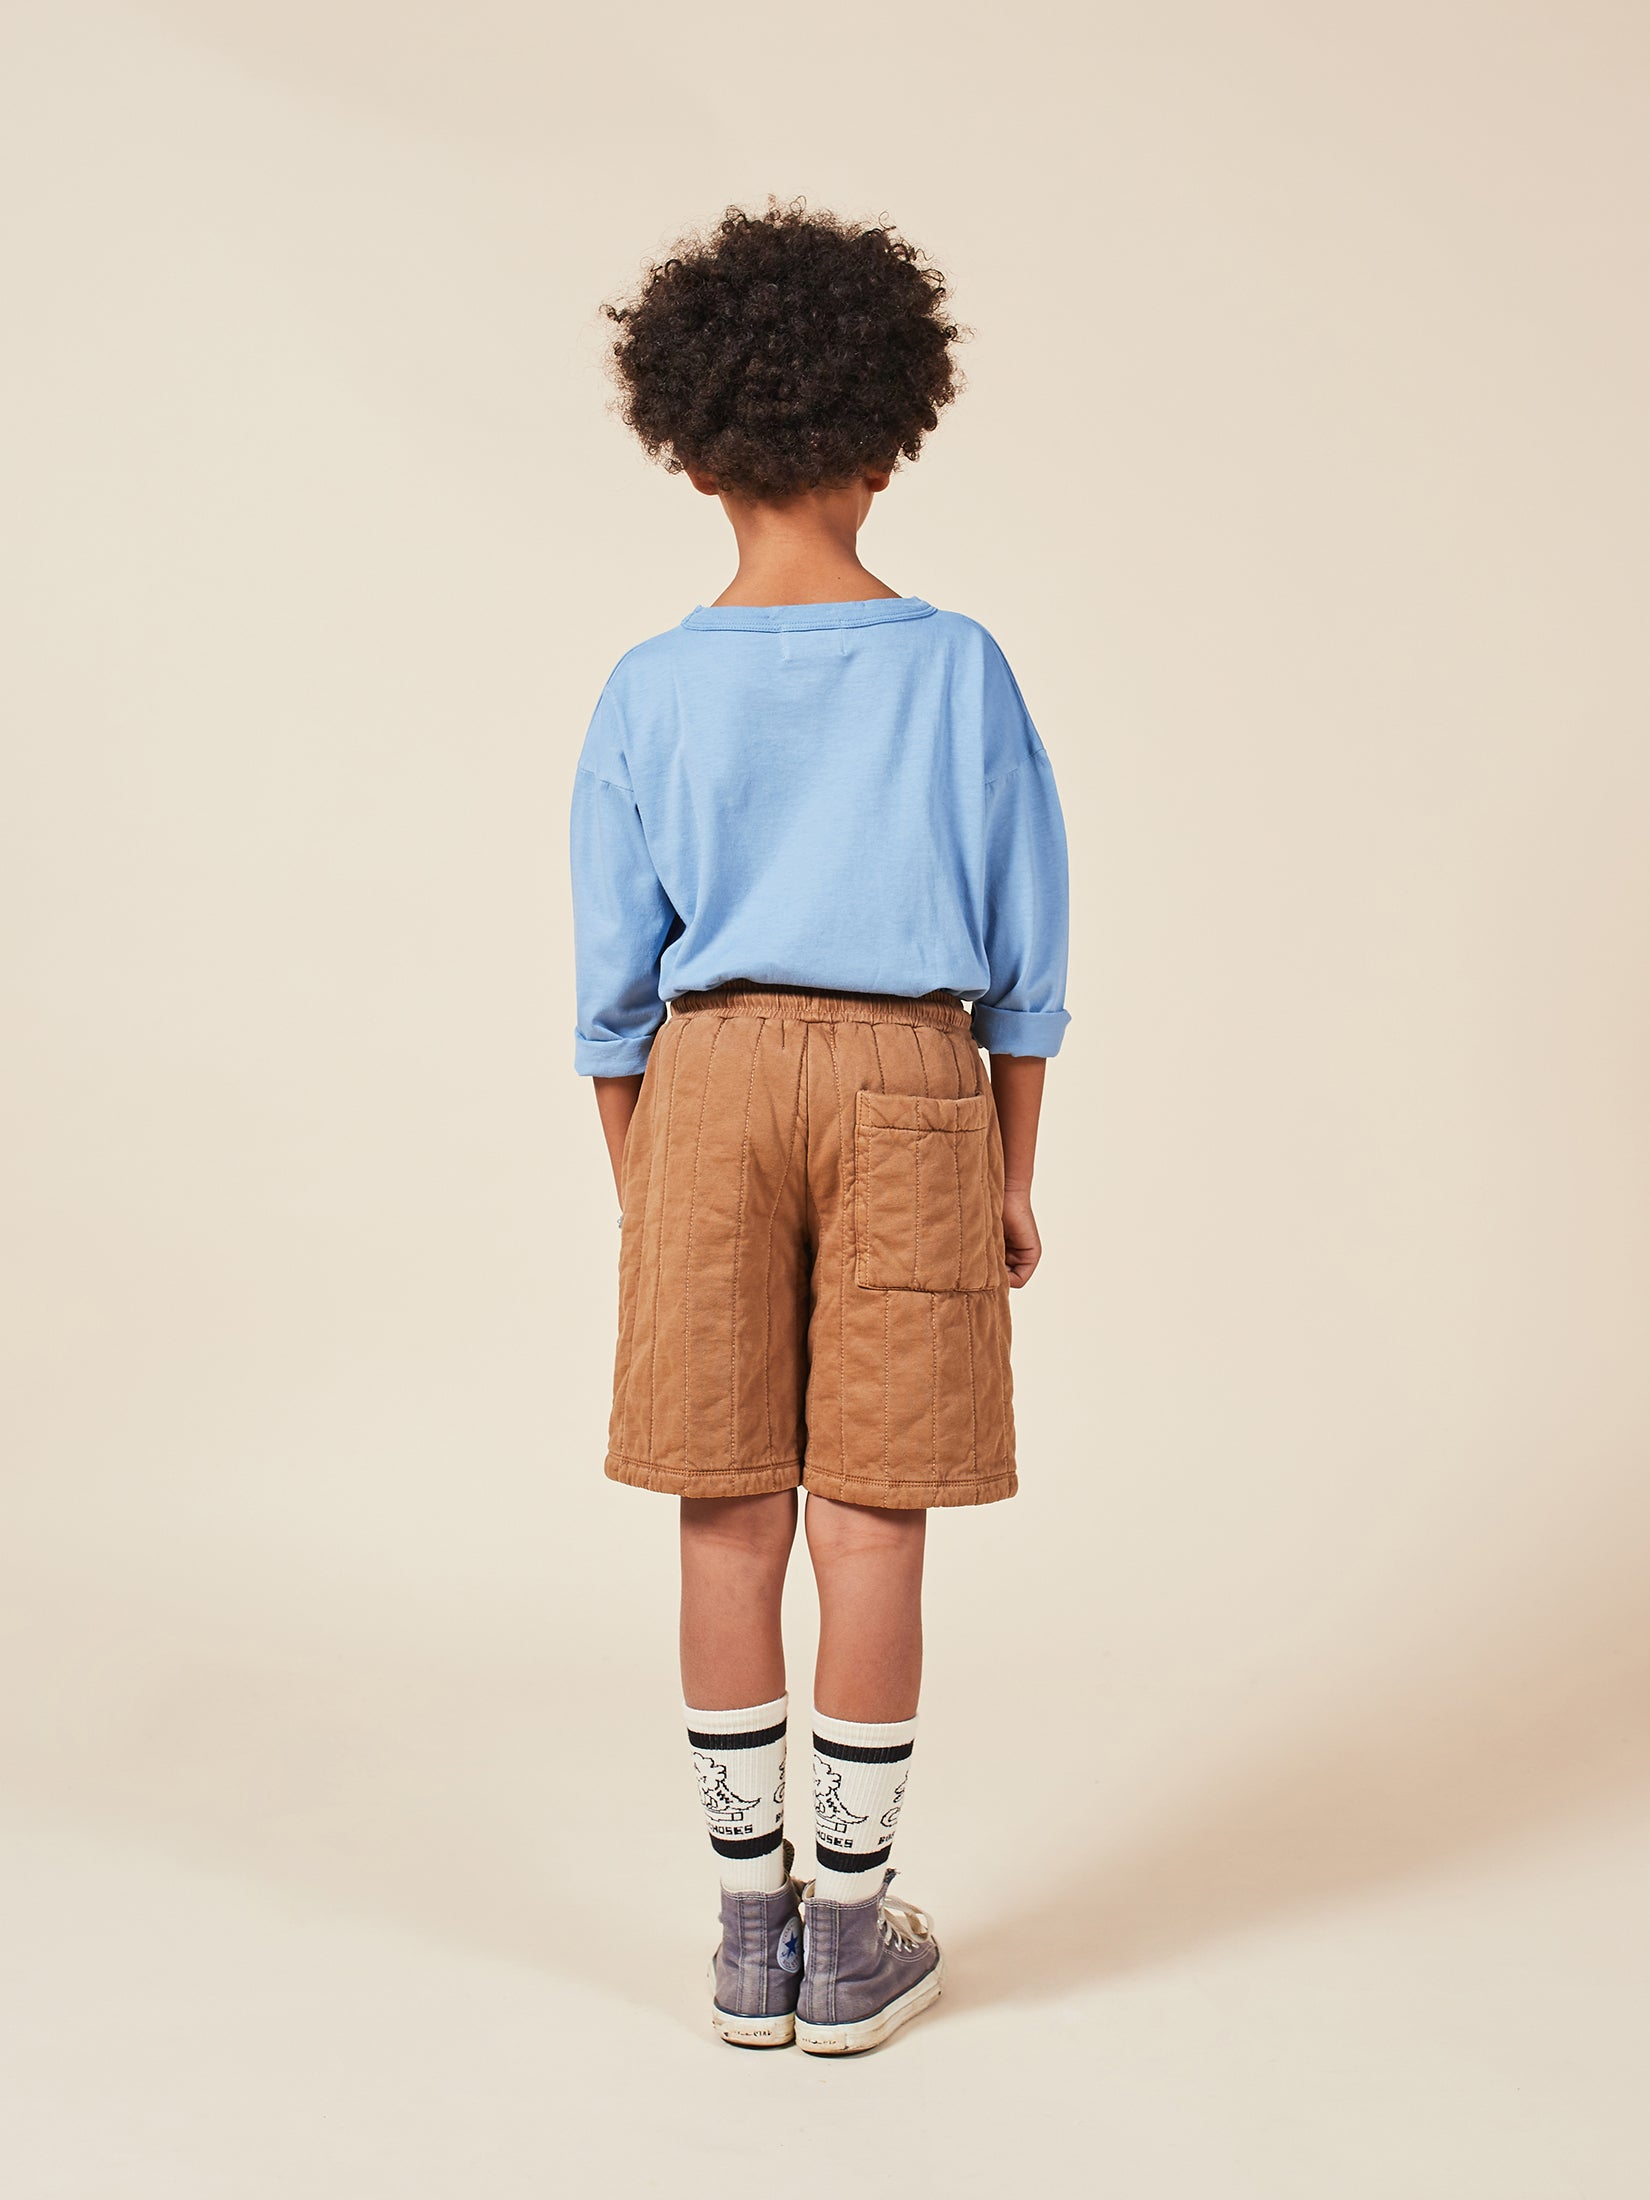 Bobo Choses Dino Kid's Long Socks White/Black | BIEN BIEN bienbienshop.com